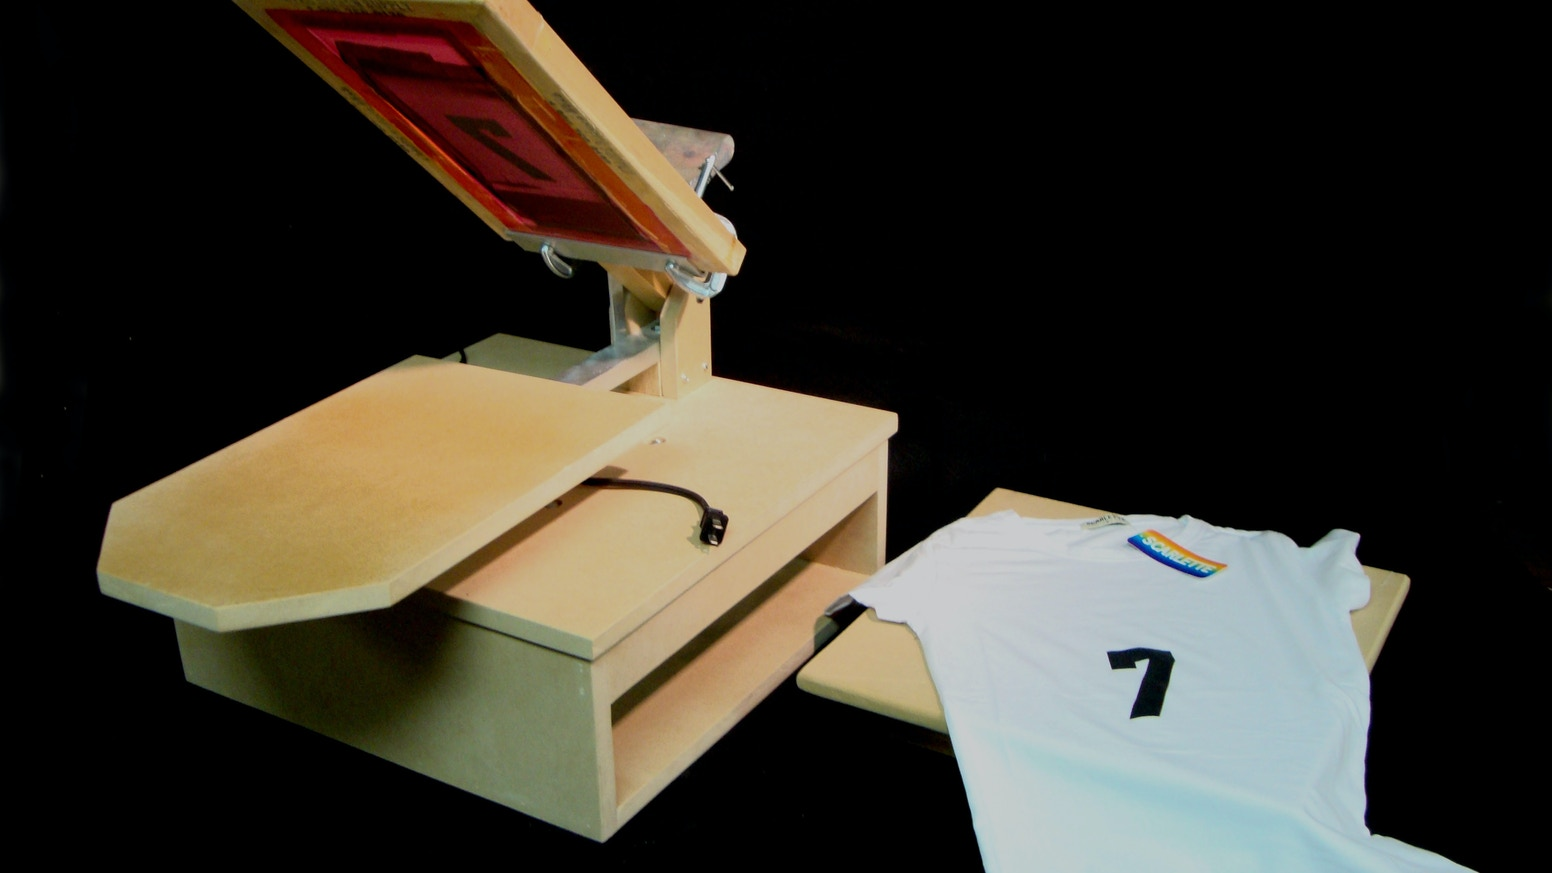 c9670017 DIY T-shirt Heat Press and Screen Printer using a griddle! by Joe ...